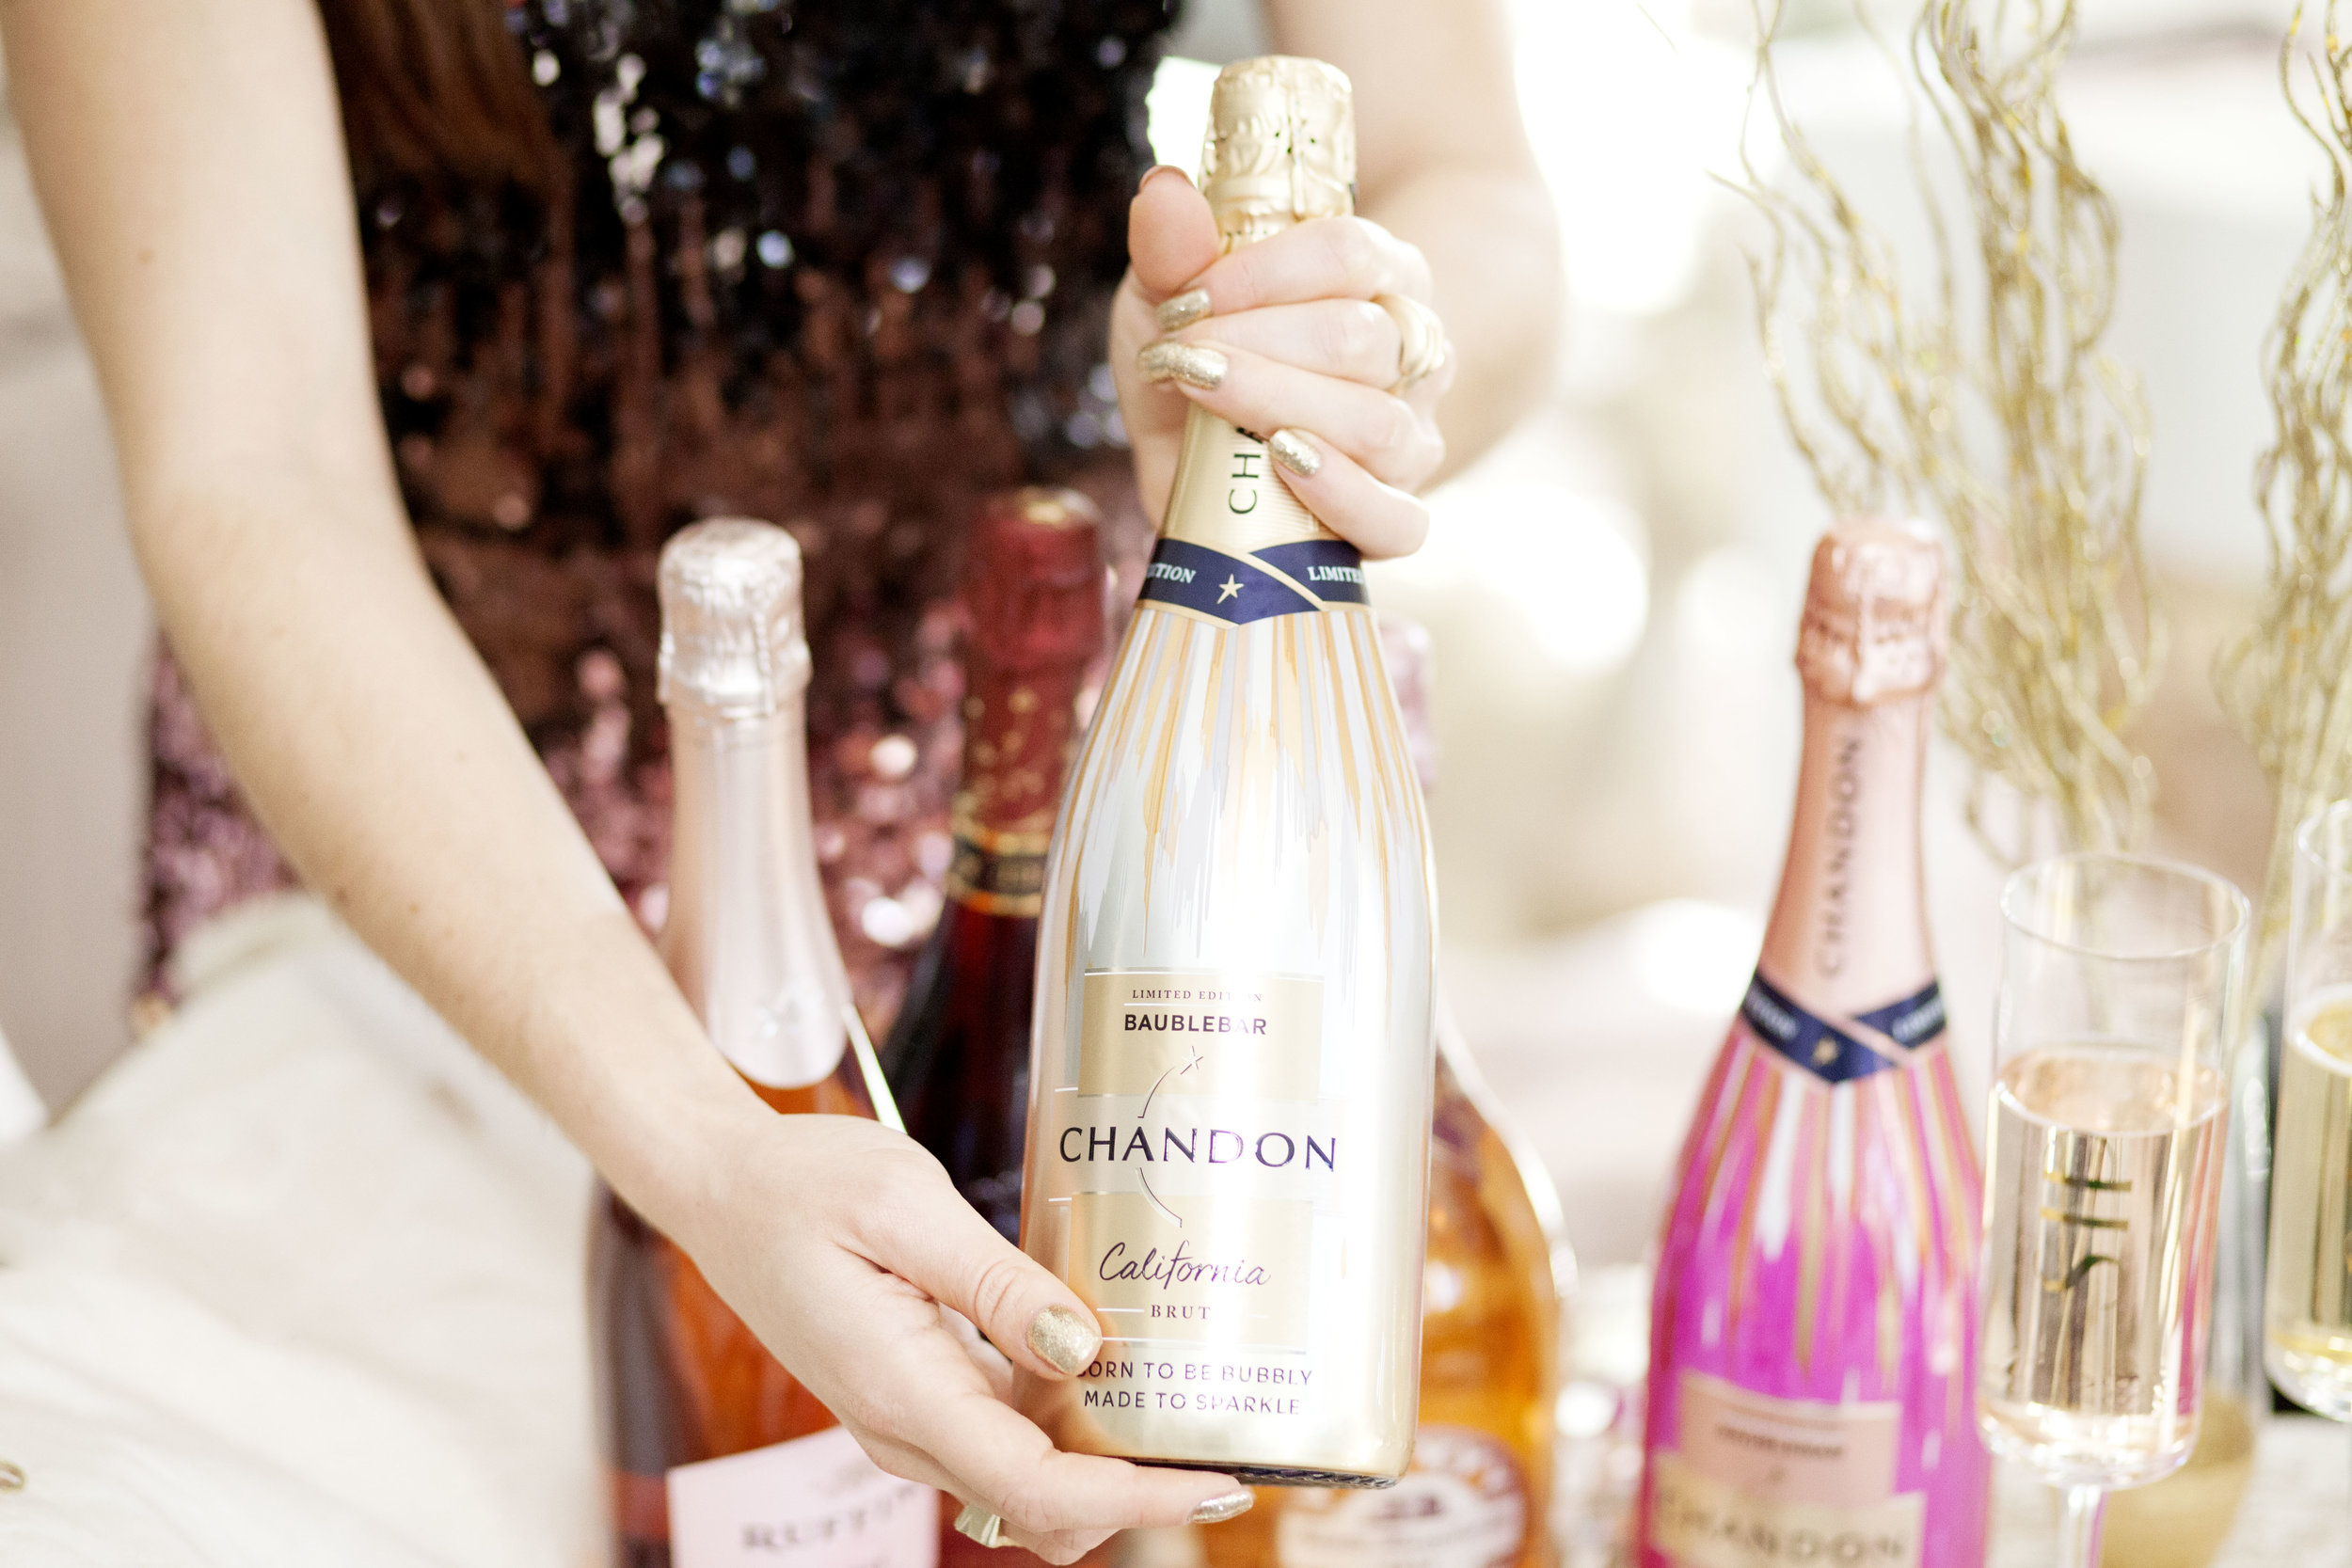 Chandon x BaubleBar Brut Champagne - The Gilded Bellini